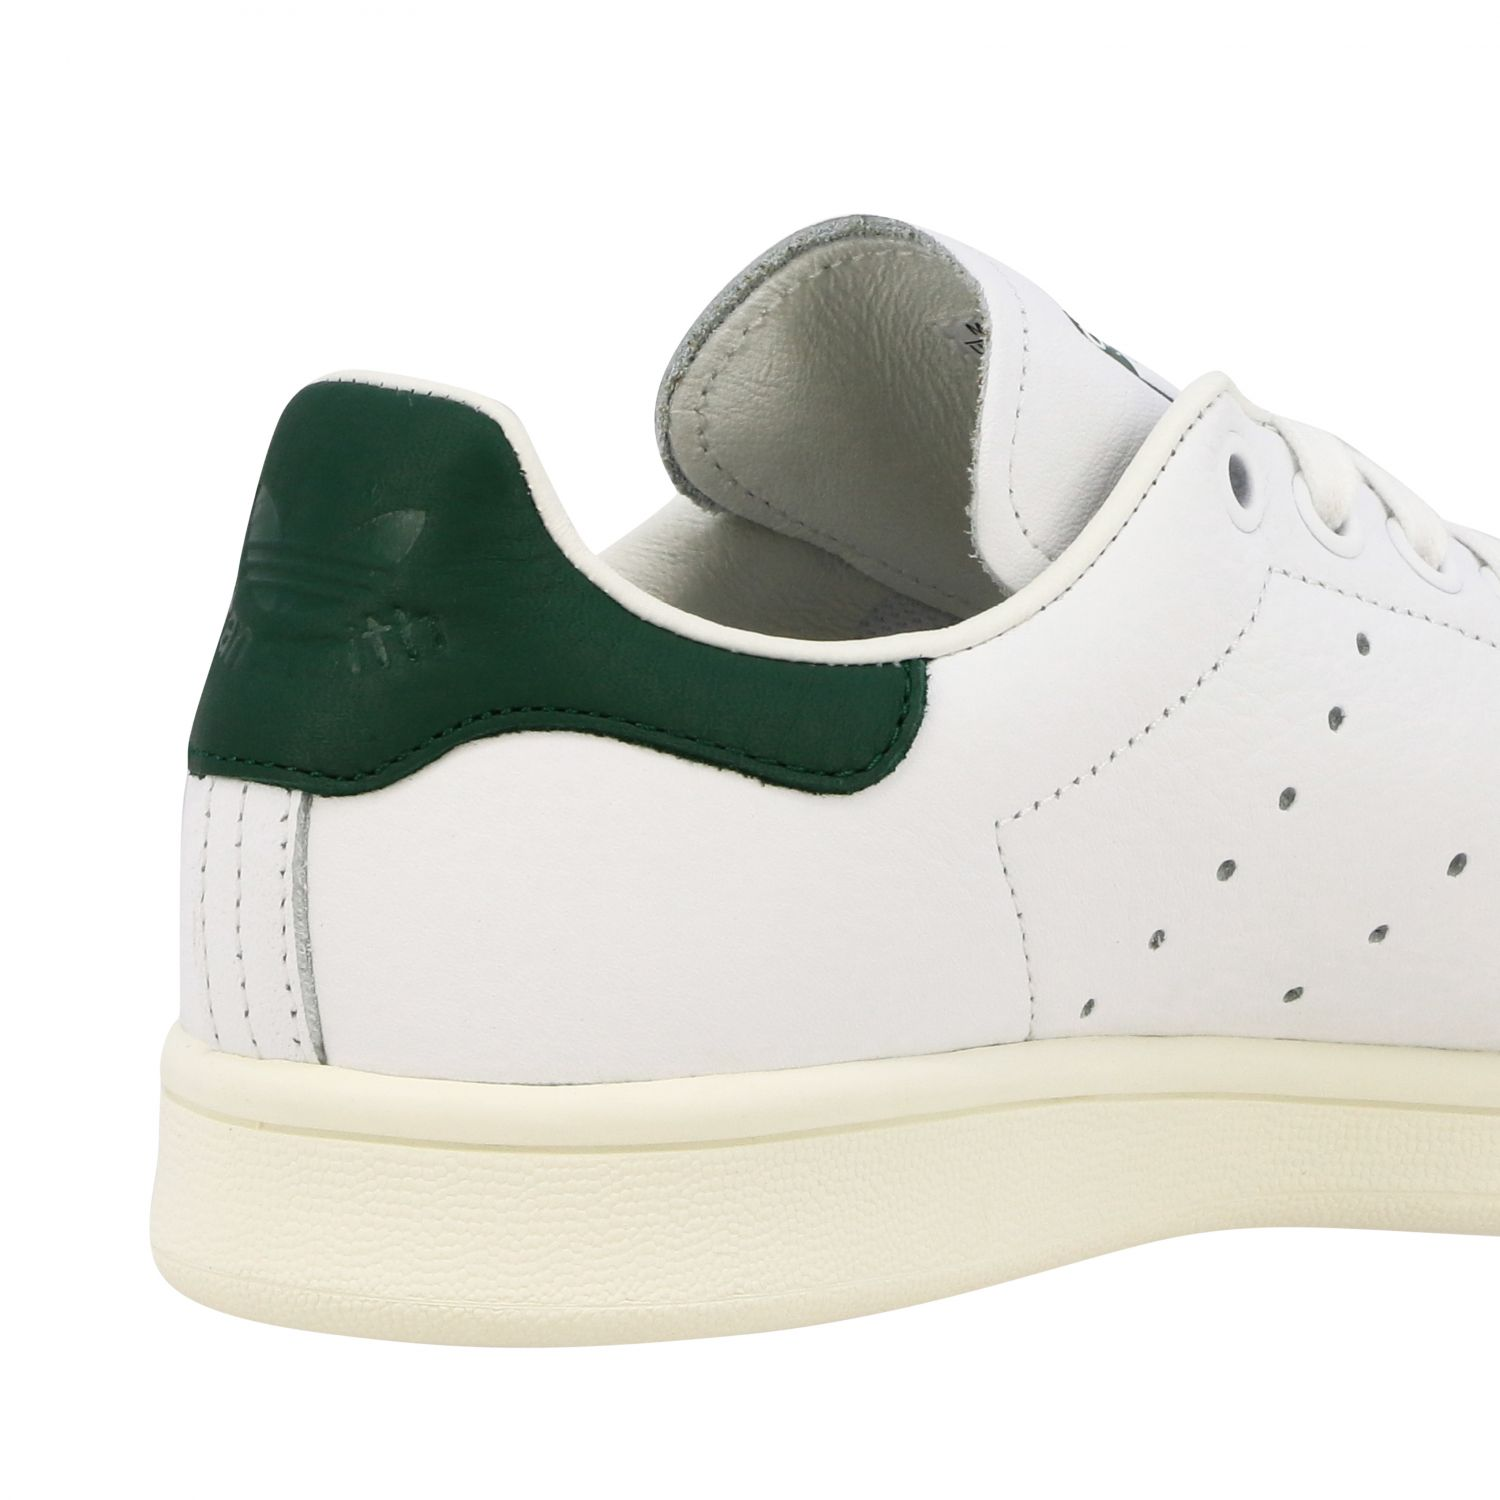 Sneakers Adidas Originals: Sneakers Stan smith Adidas Originals in pelle bianco 5